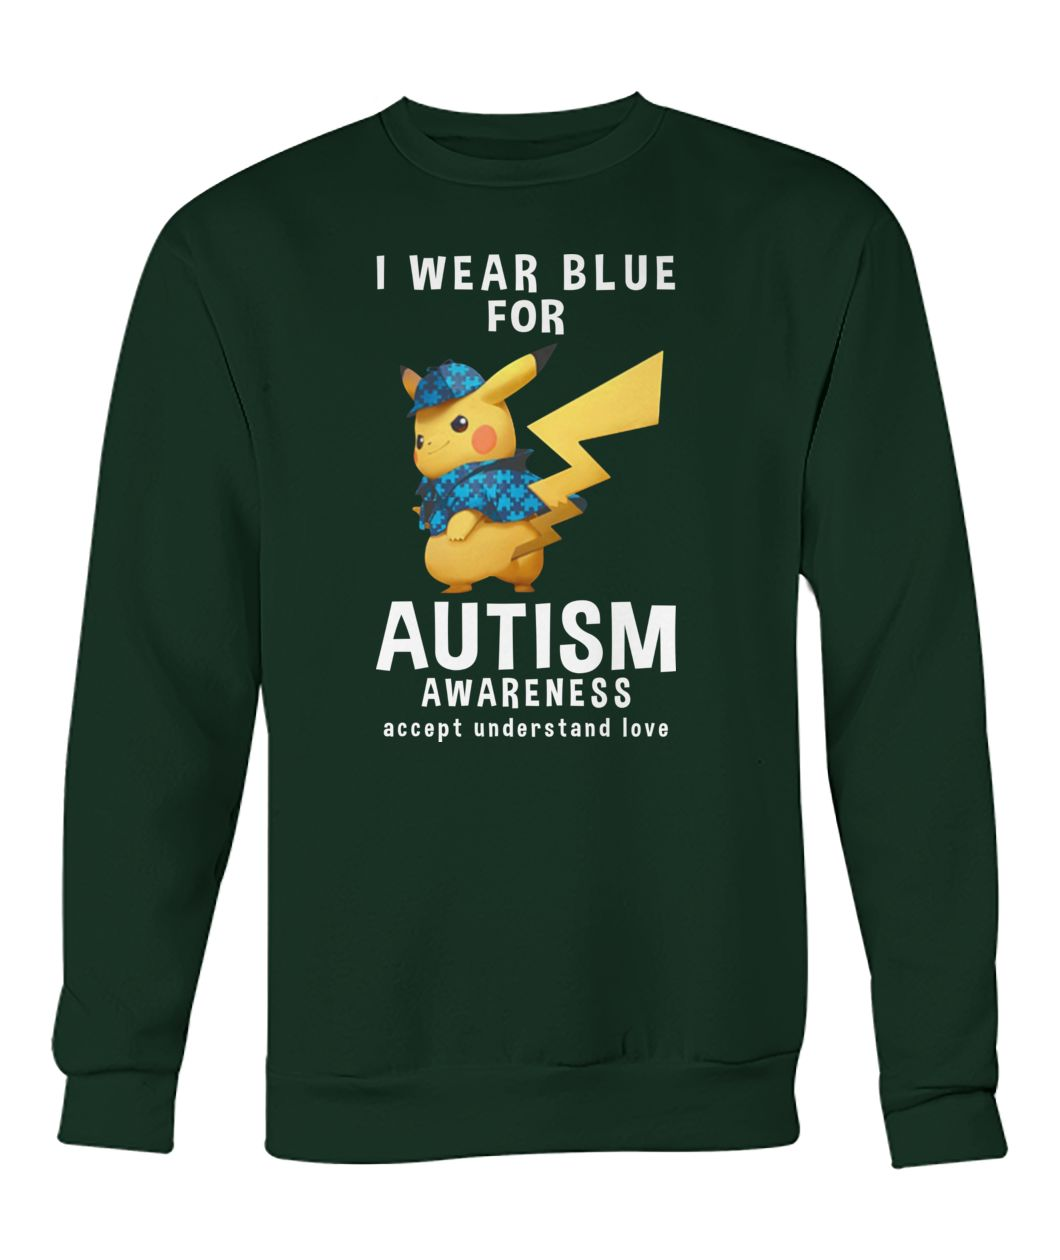 Pikachu I wear blue for autism awareness crew neck sweatshirt